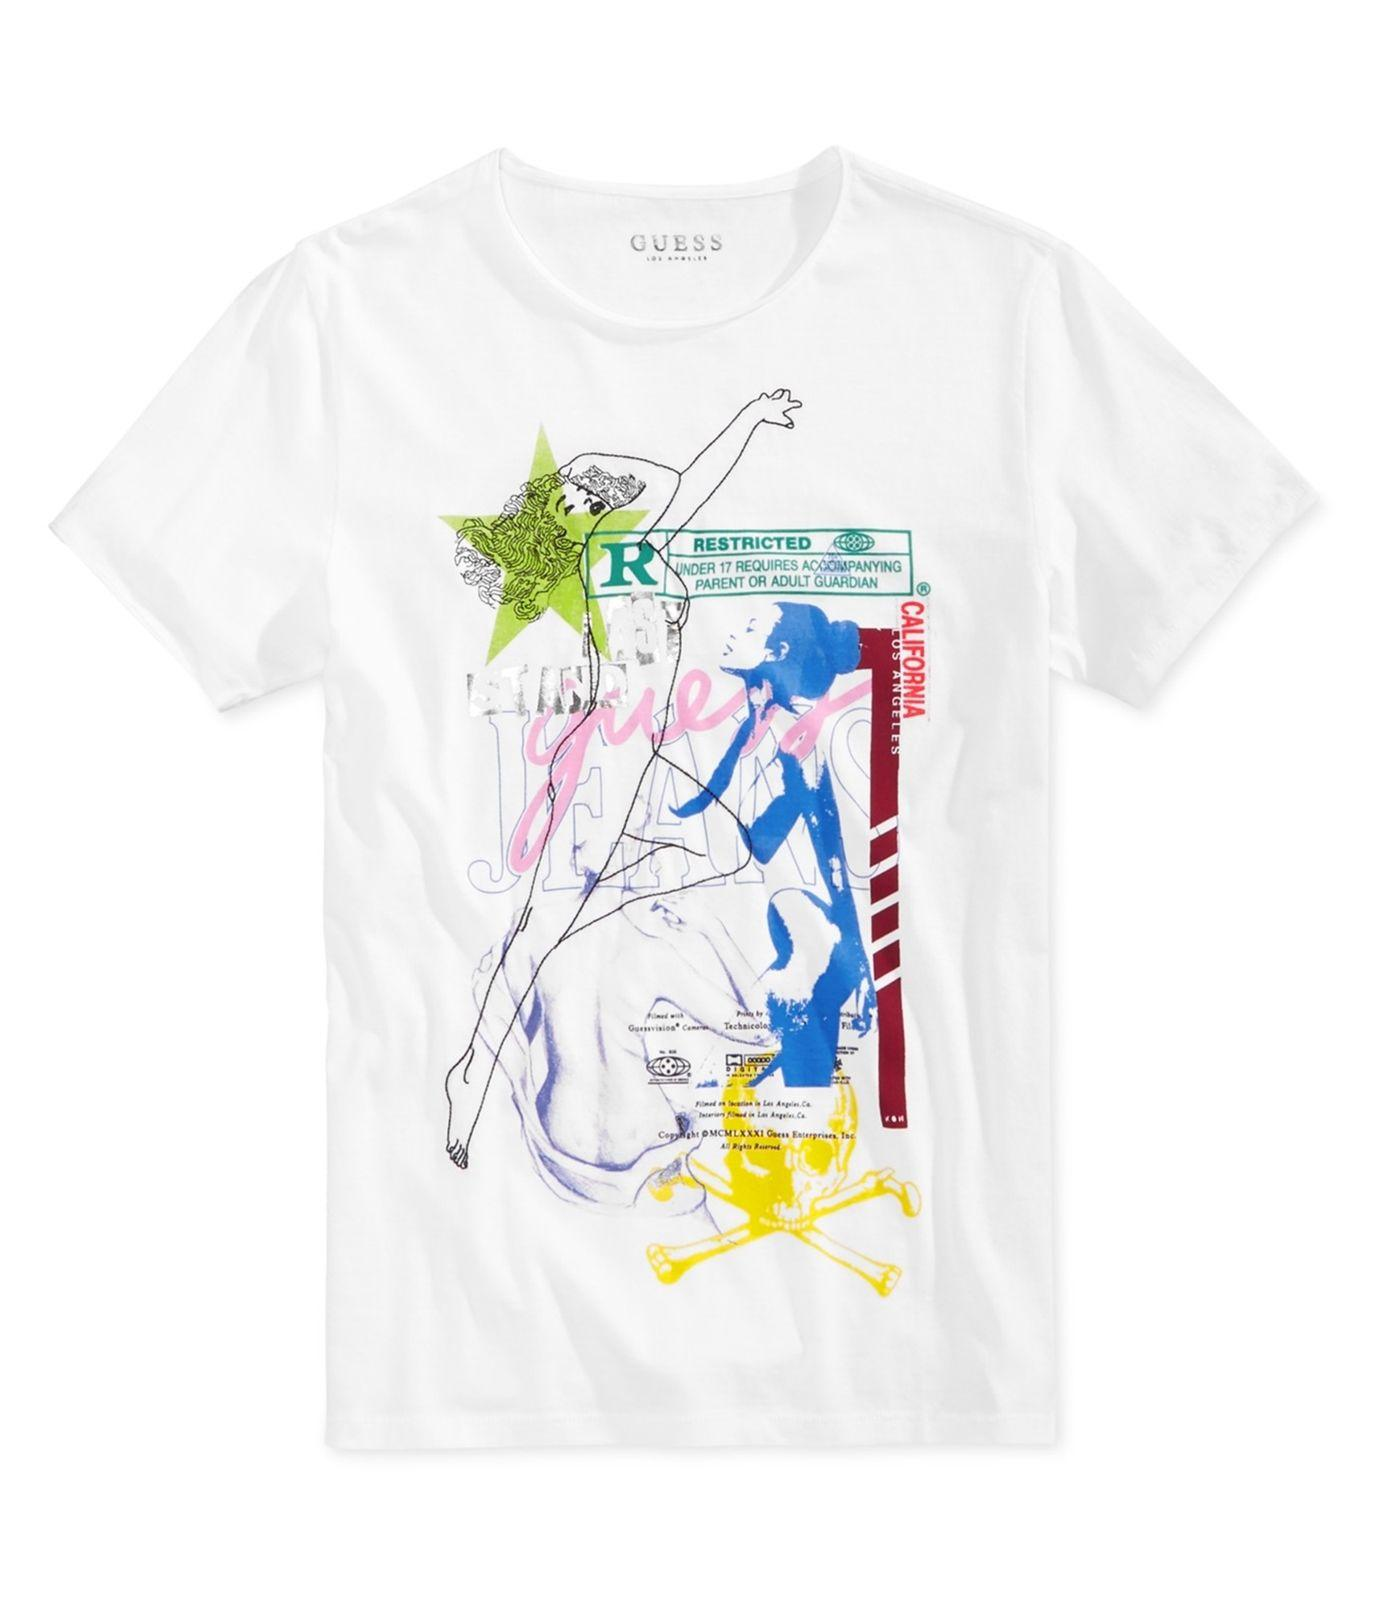 eb69e158e7b6 GUESS Mens Collage Graphic T Shirt Truewhite 2XL Latest T Shirt Designs  Coolest Shirts From Biyue5, $11.78| DHgate.Com